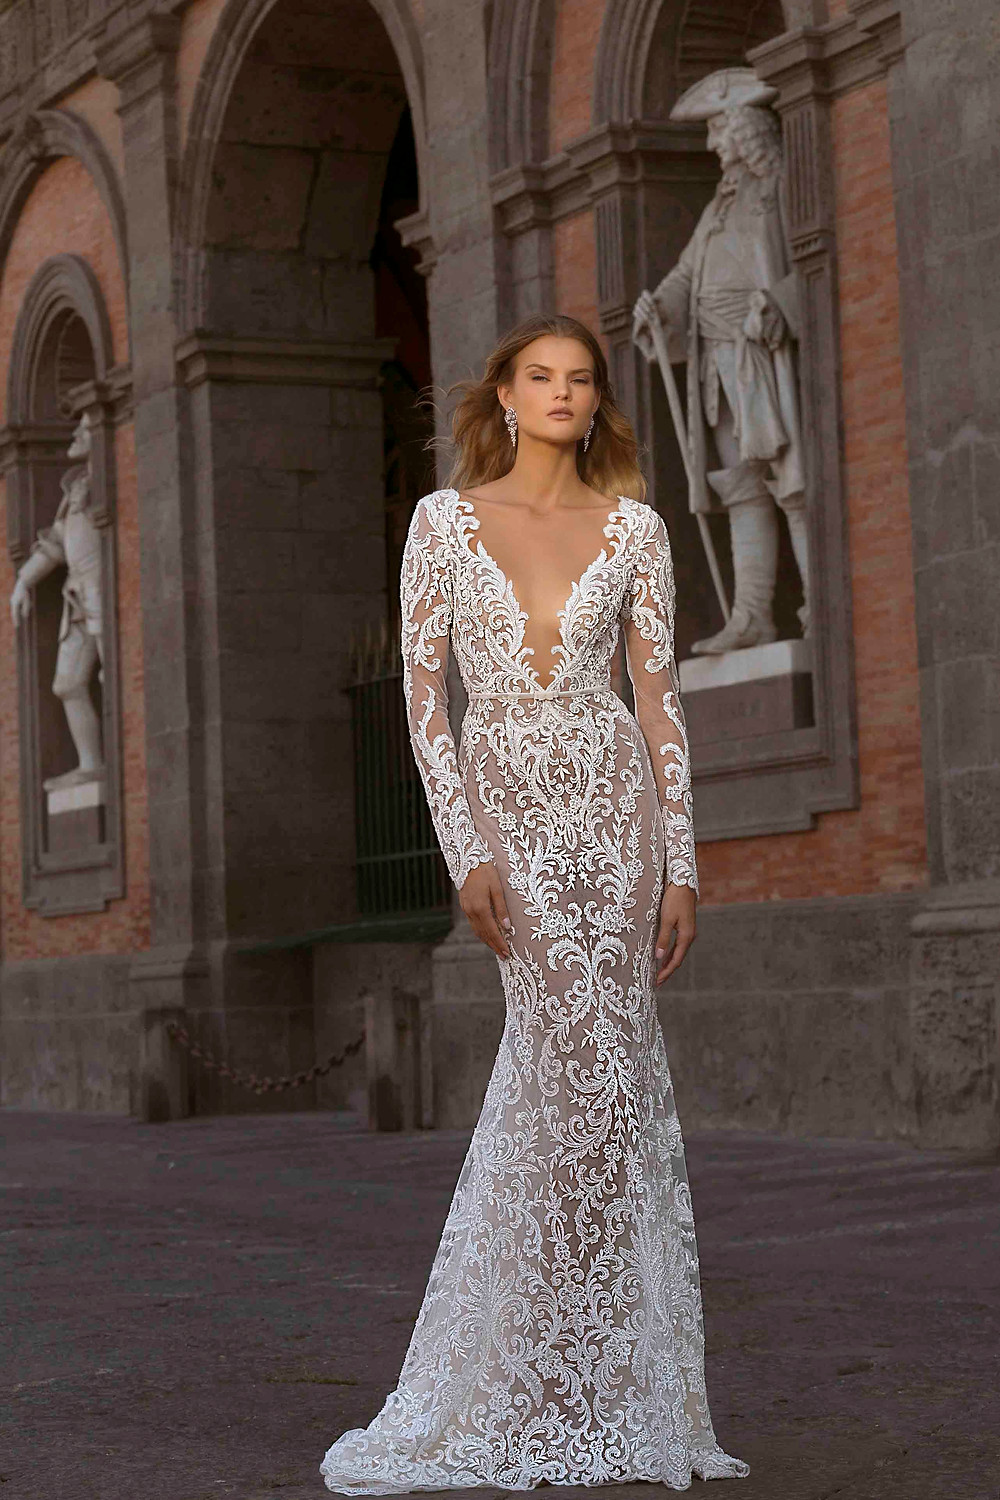 A lace mermaid wedding dress, with long illusion sleeves and low v neckline